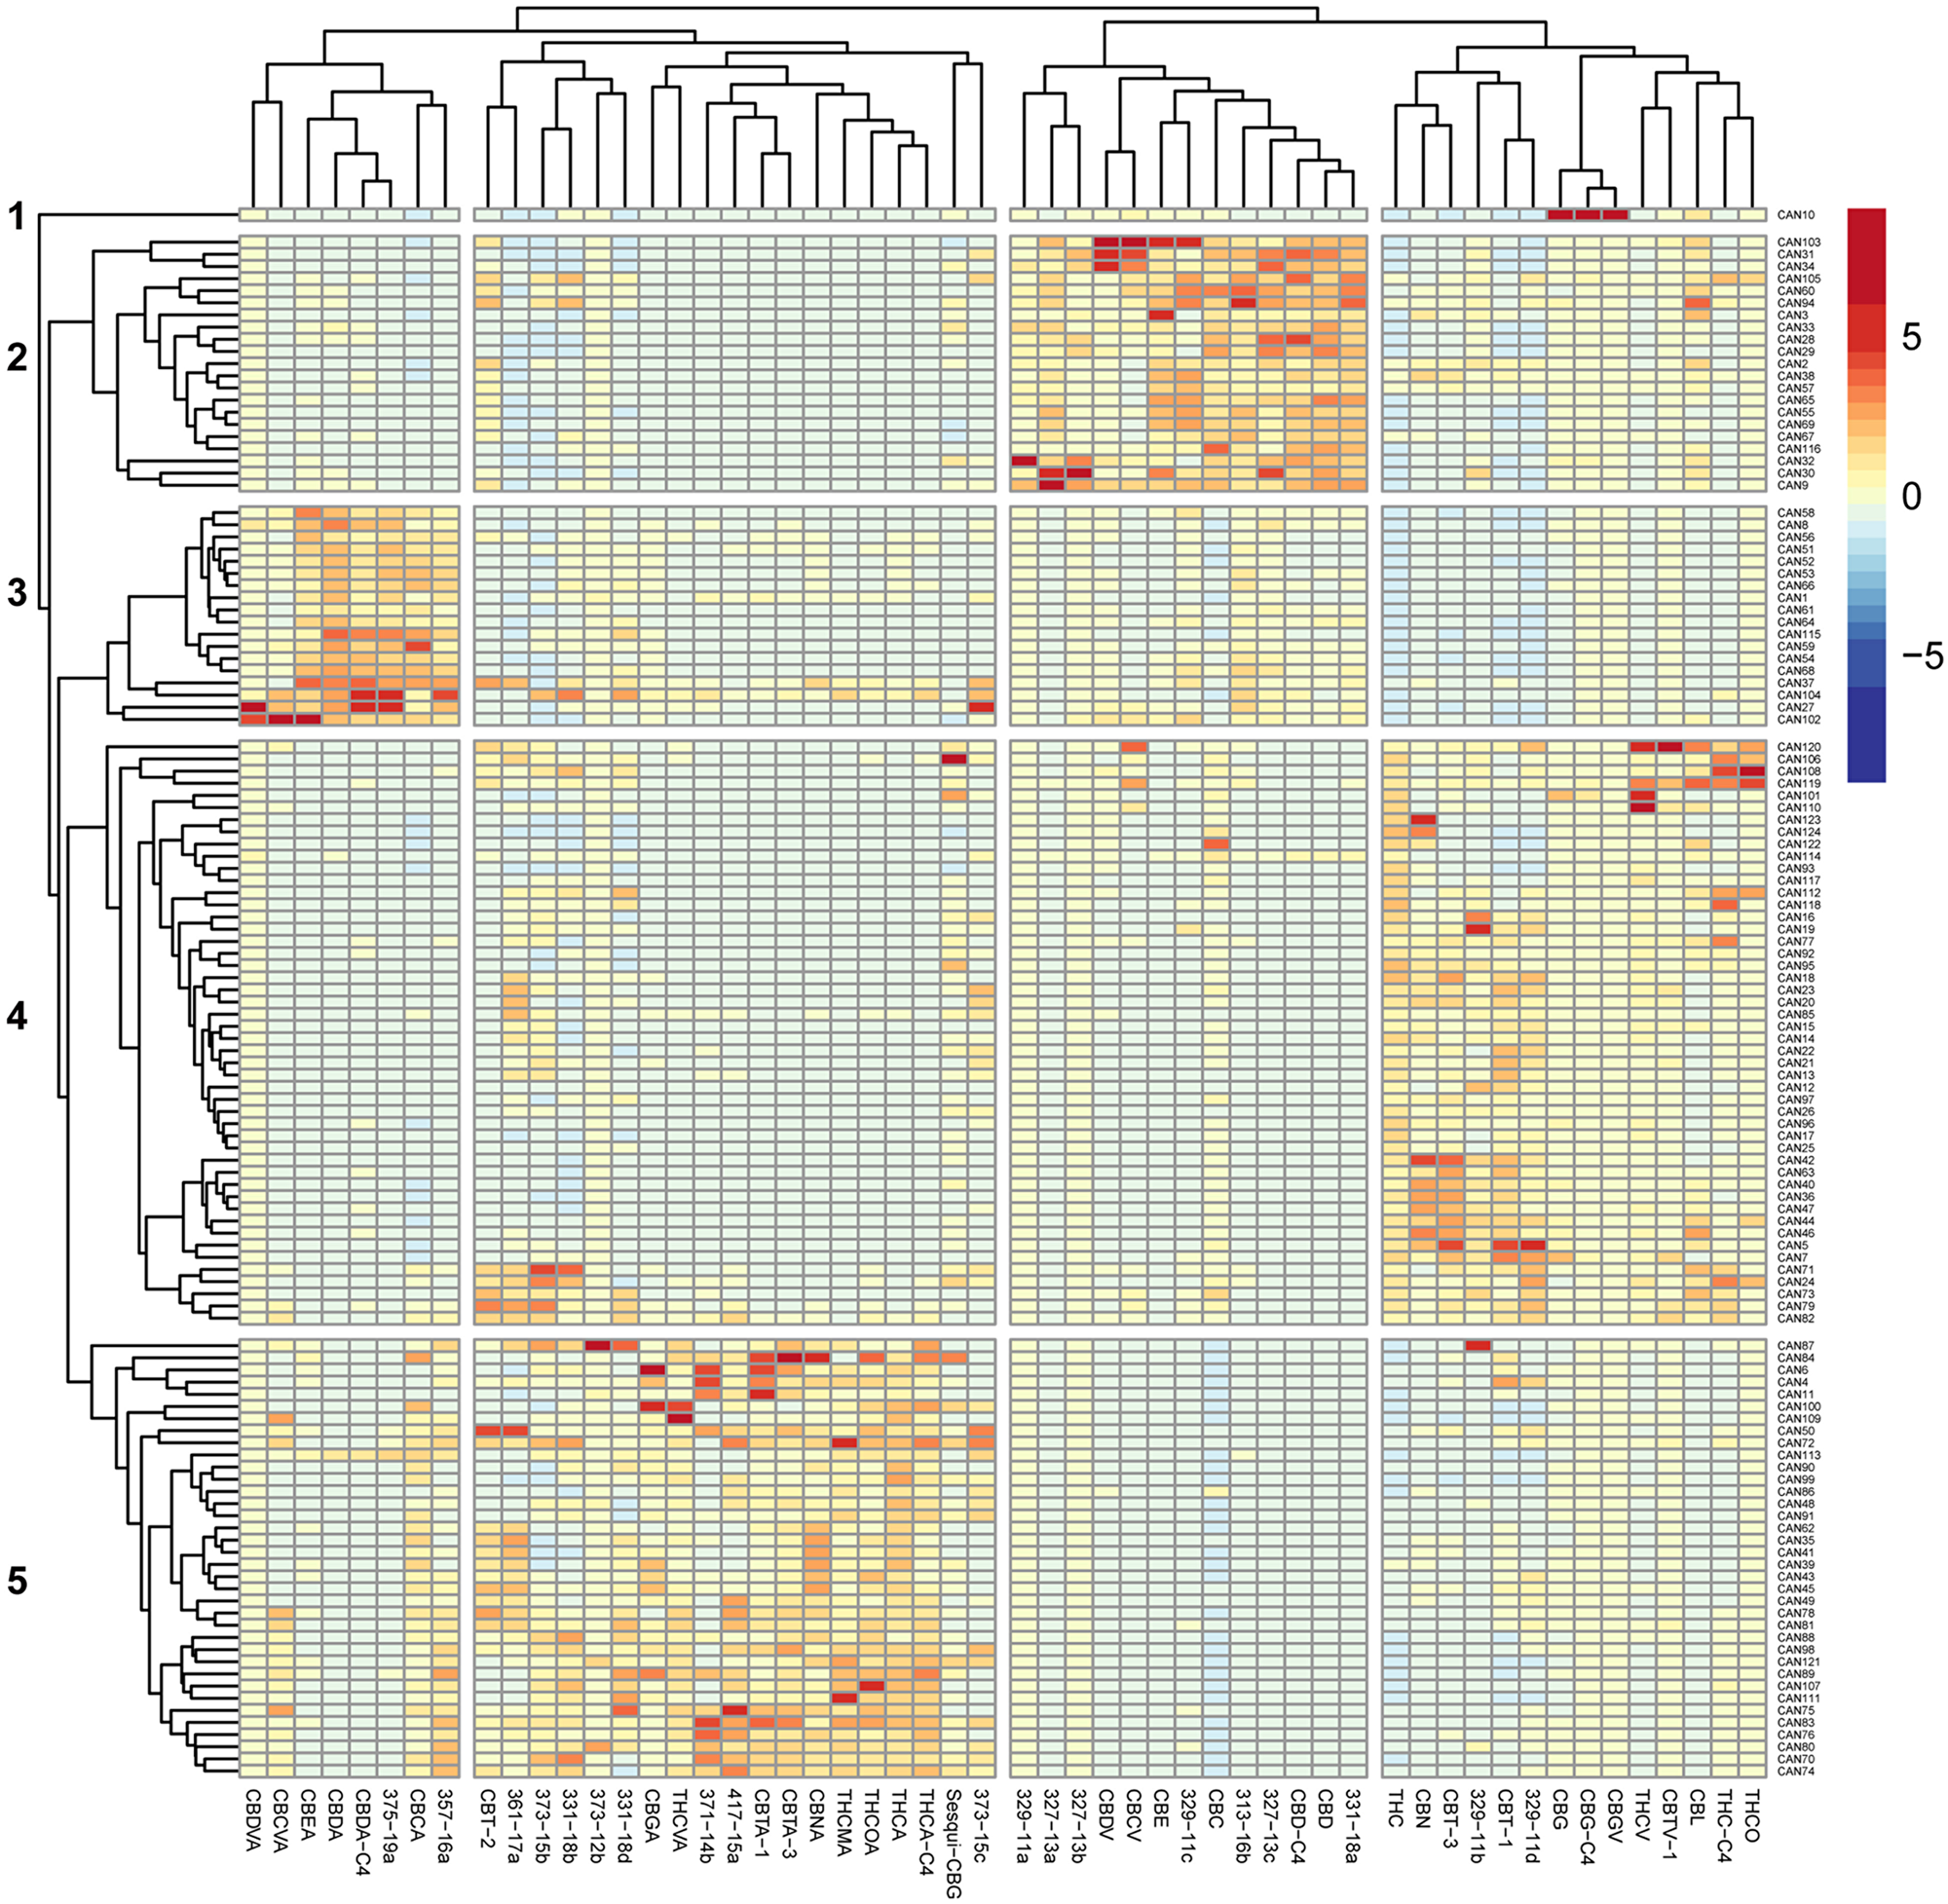 Heat map of unsupervised hierarchical clustering of the cannabinoid profile of 124 Cannabis extracts.